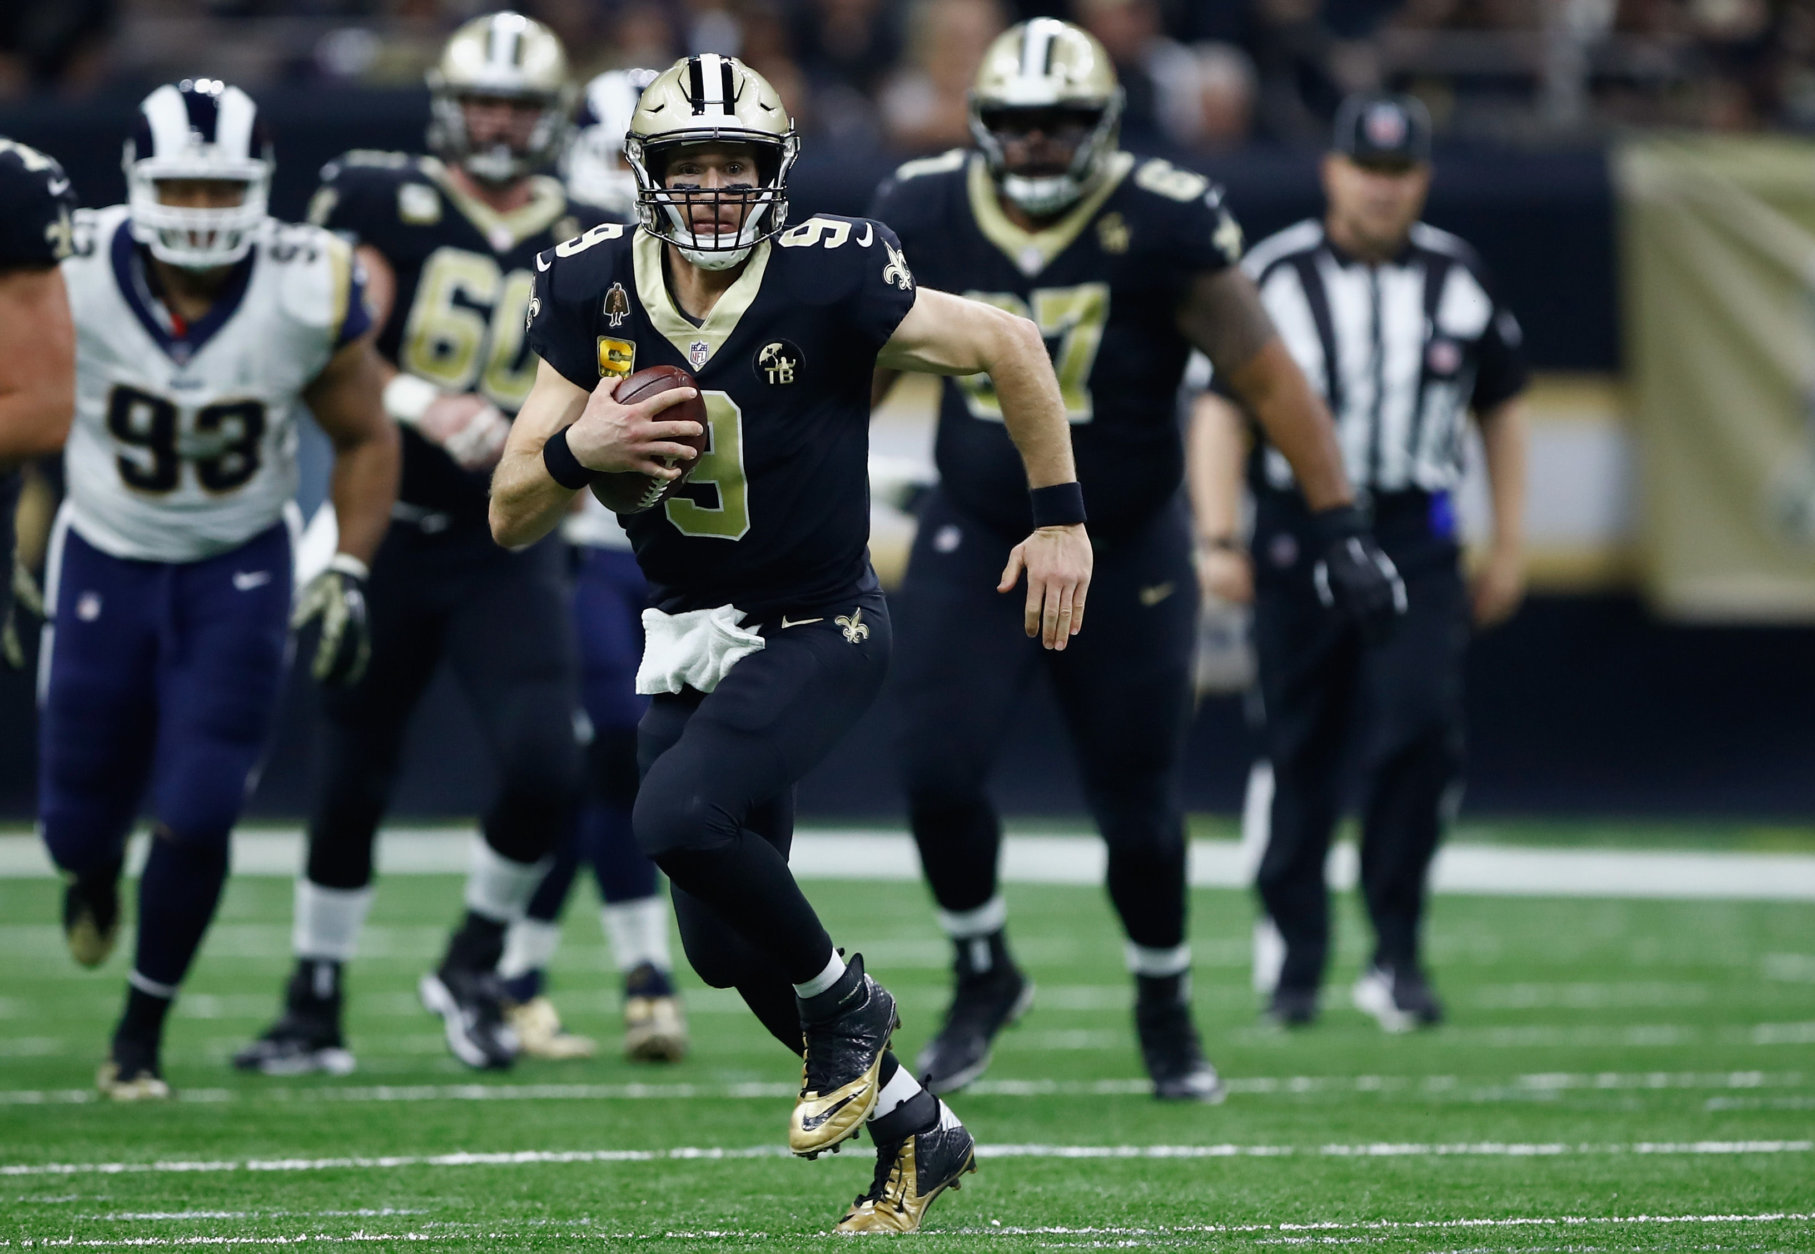 NEW ORLEANS, LA - NOVEMBER 04:  Quarterback Drew Brees #9 of the New Orleans Saints runs with the ball during the second quarter of the game against the Los Angeles Rams at Mercedes-Benz Superdome on November 4, 2018 in New Orleans, Louisiana.  (Photo by Wesley Hitt/Getty Images)